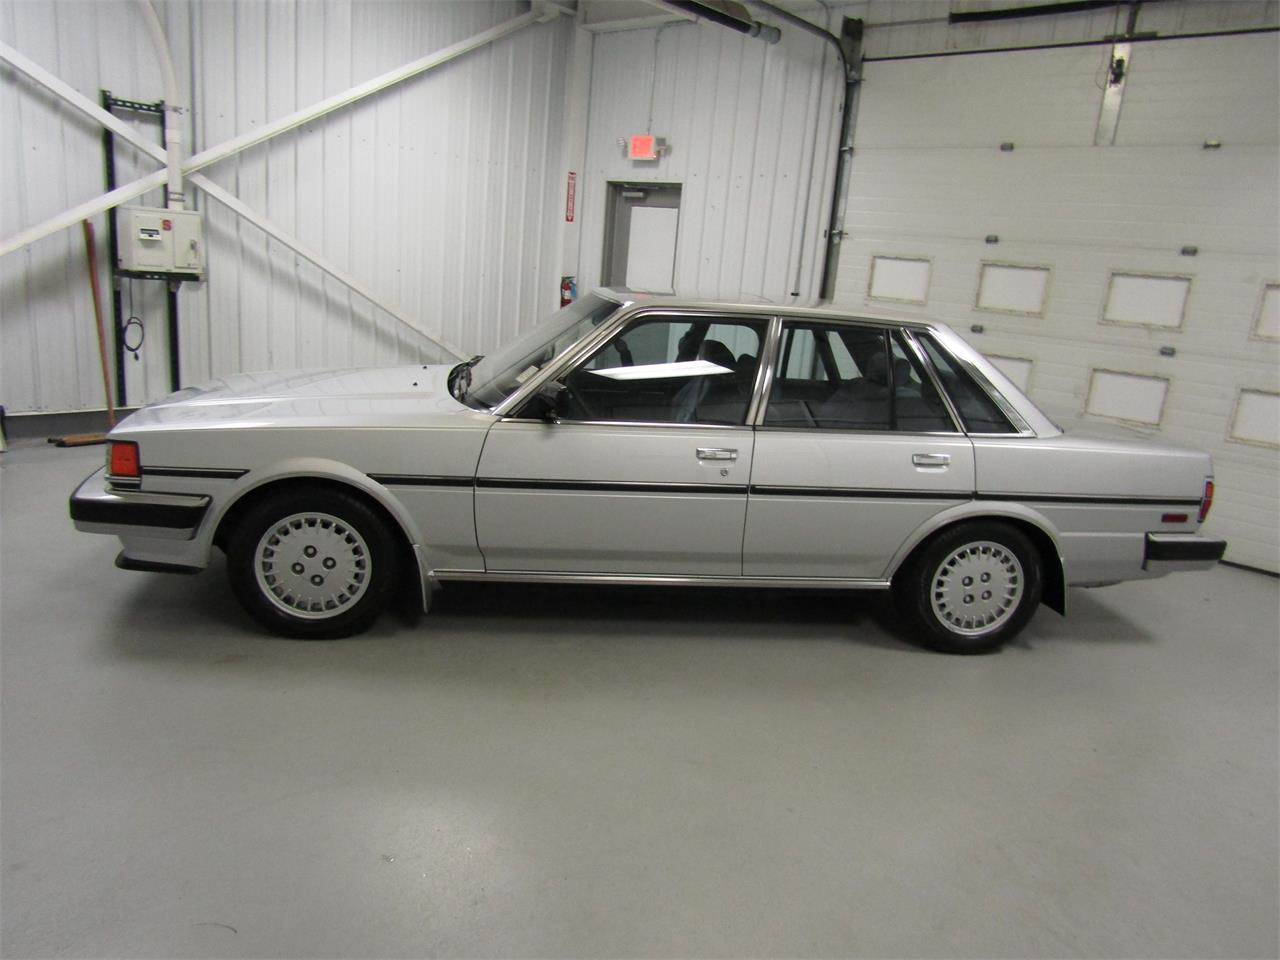 1985 Toyota Cressida for sale in Christiansburg, VA – photo 6